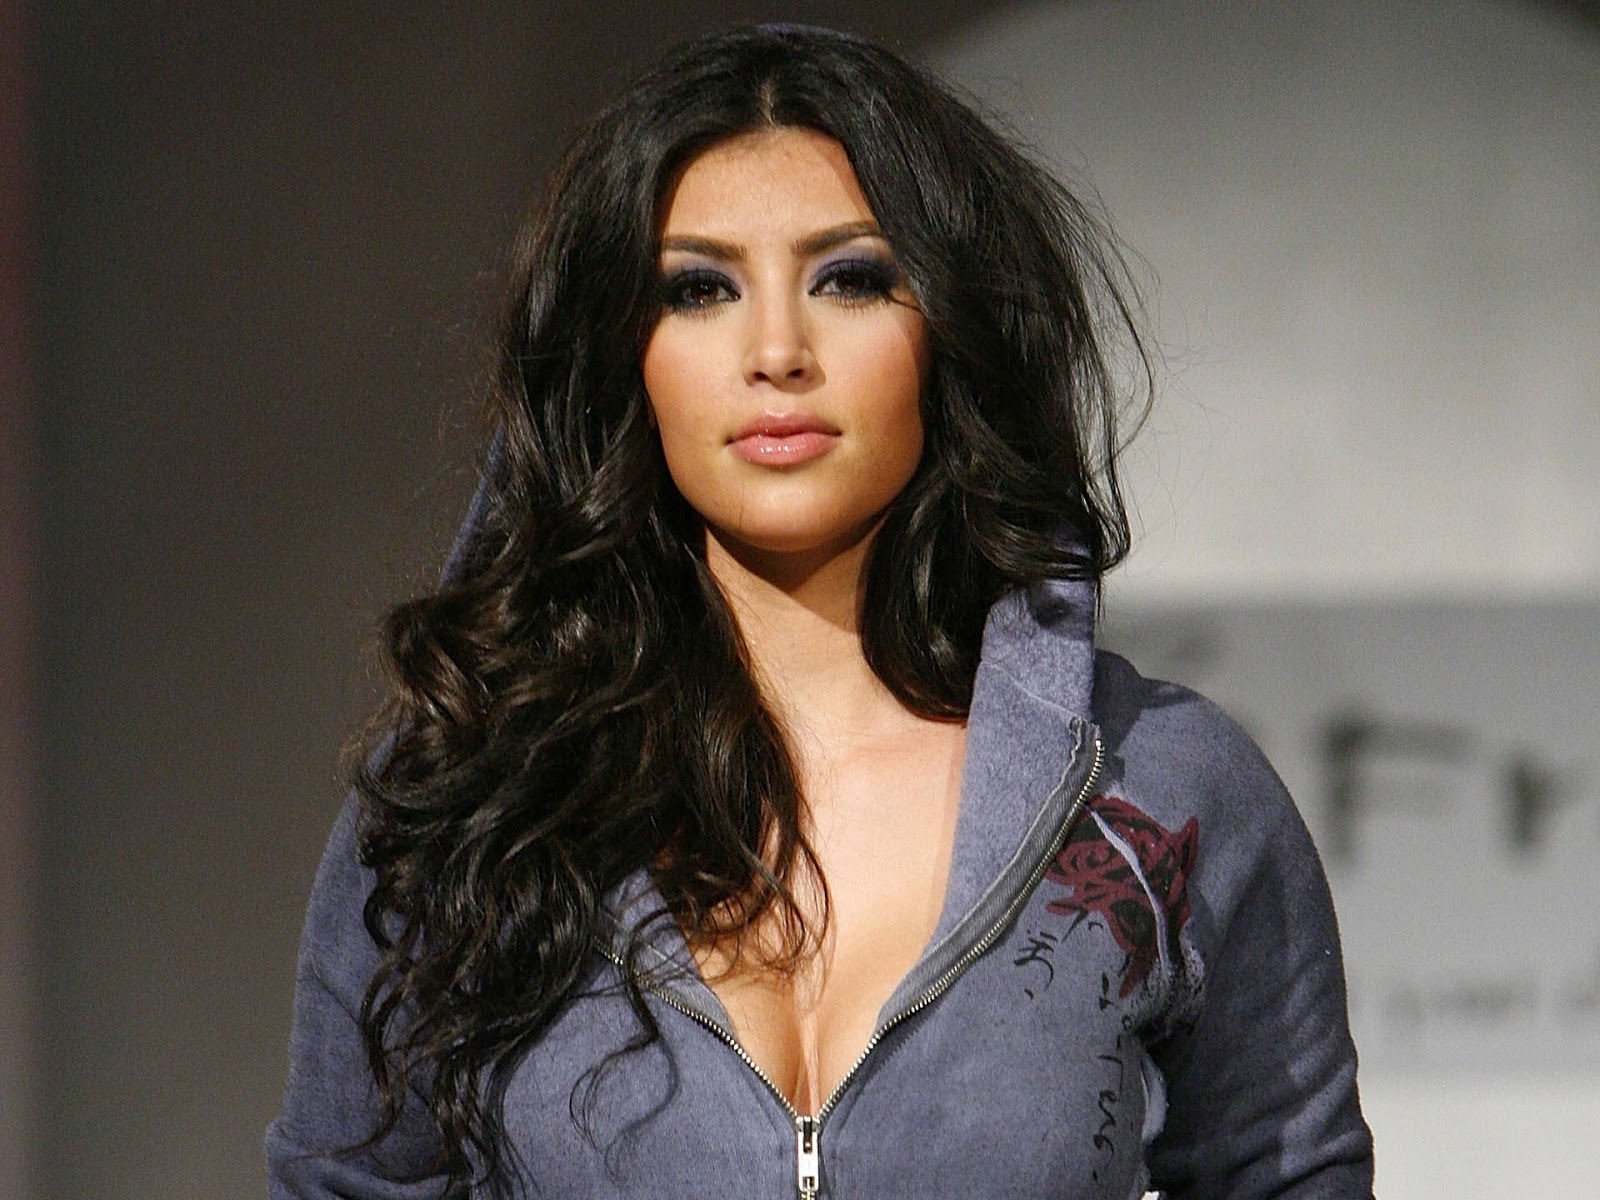 Kim Kardashian Was Born At Los Angeles California US On October 21 1980